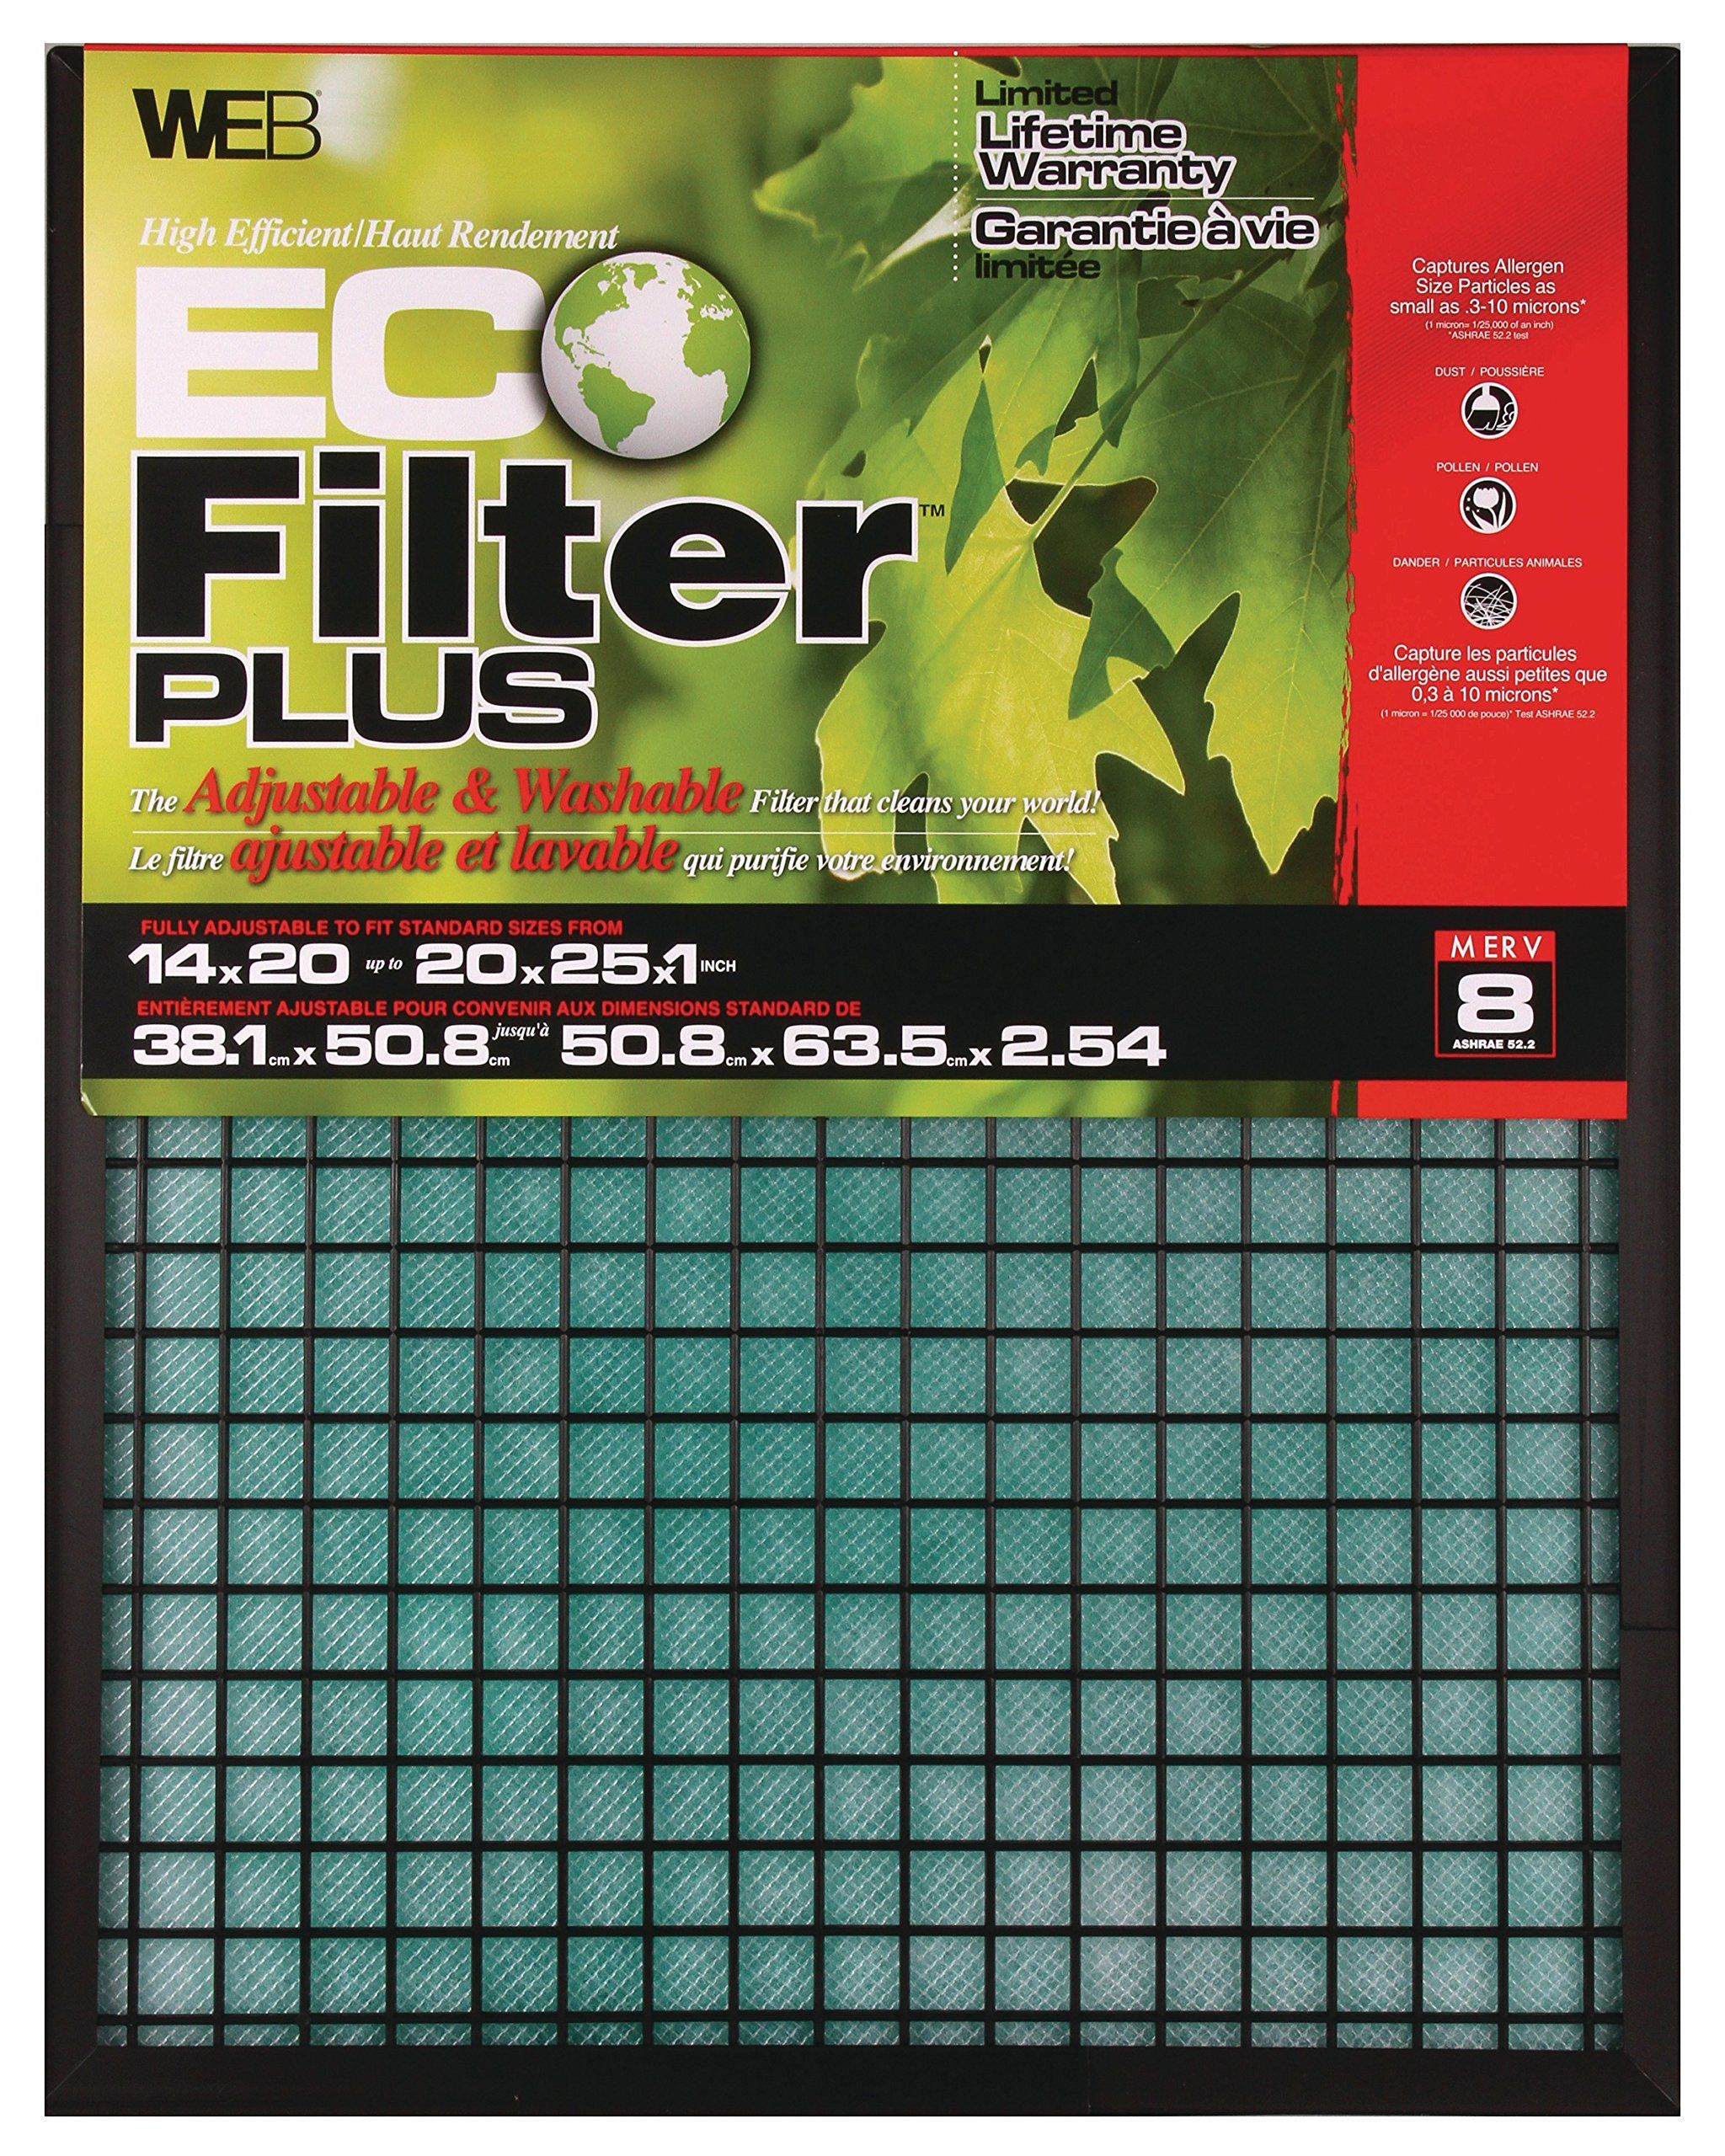 AmazonSmile WEB WPLUS Eco Filter Plus Adjustable Air